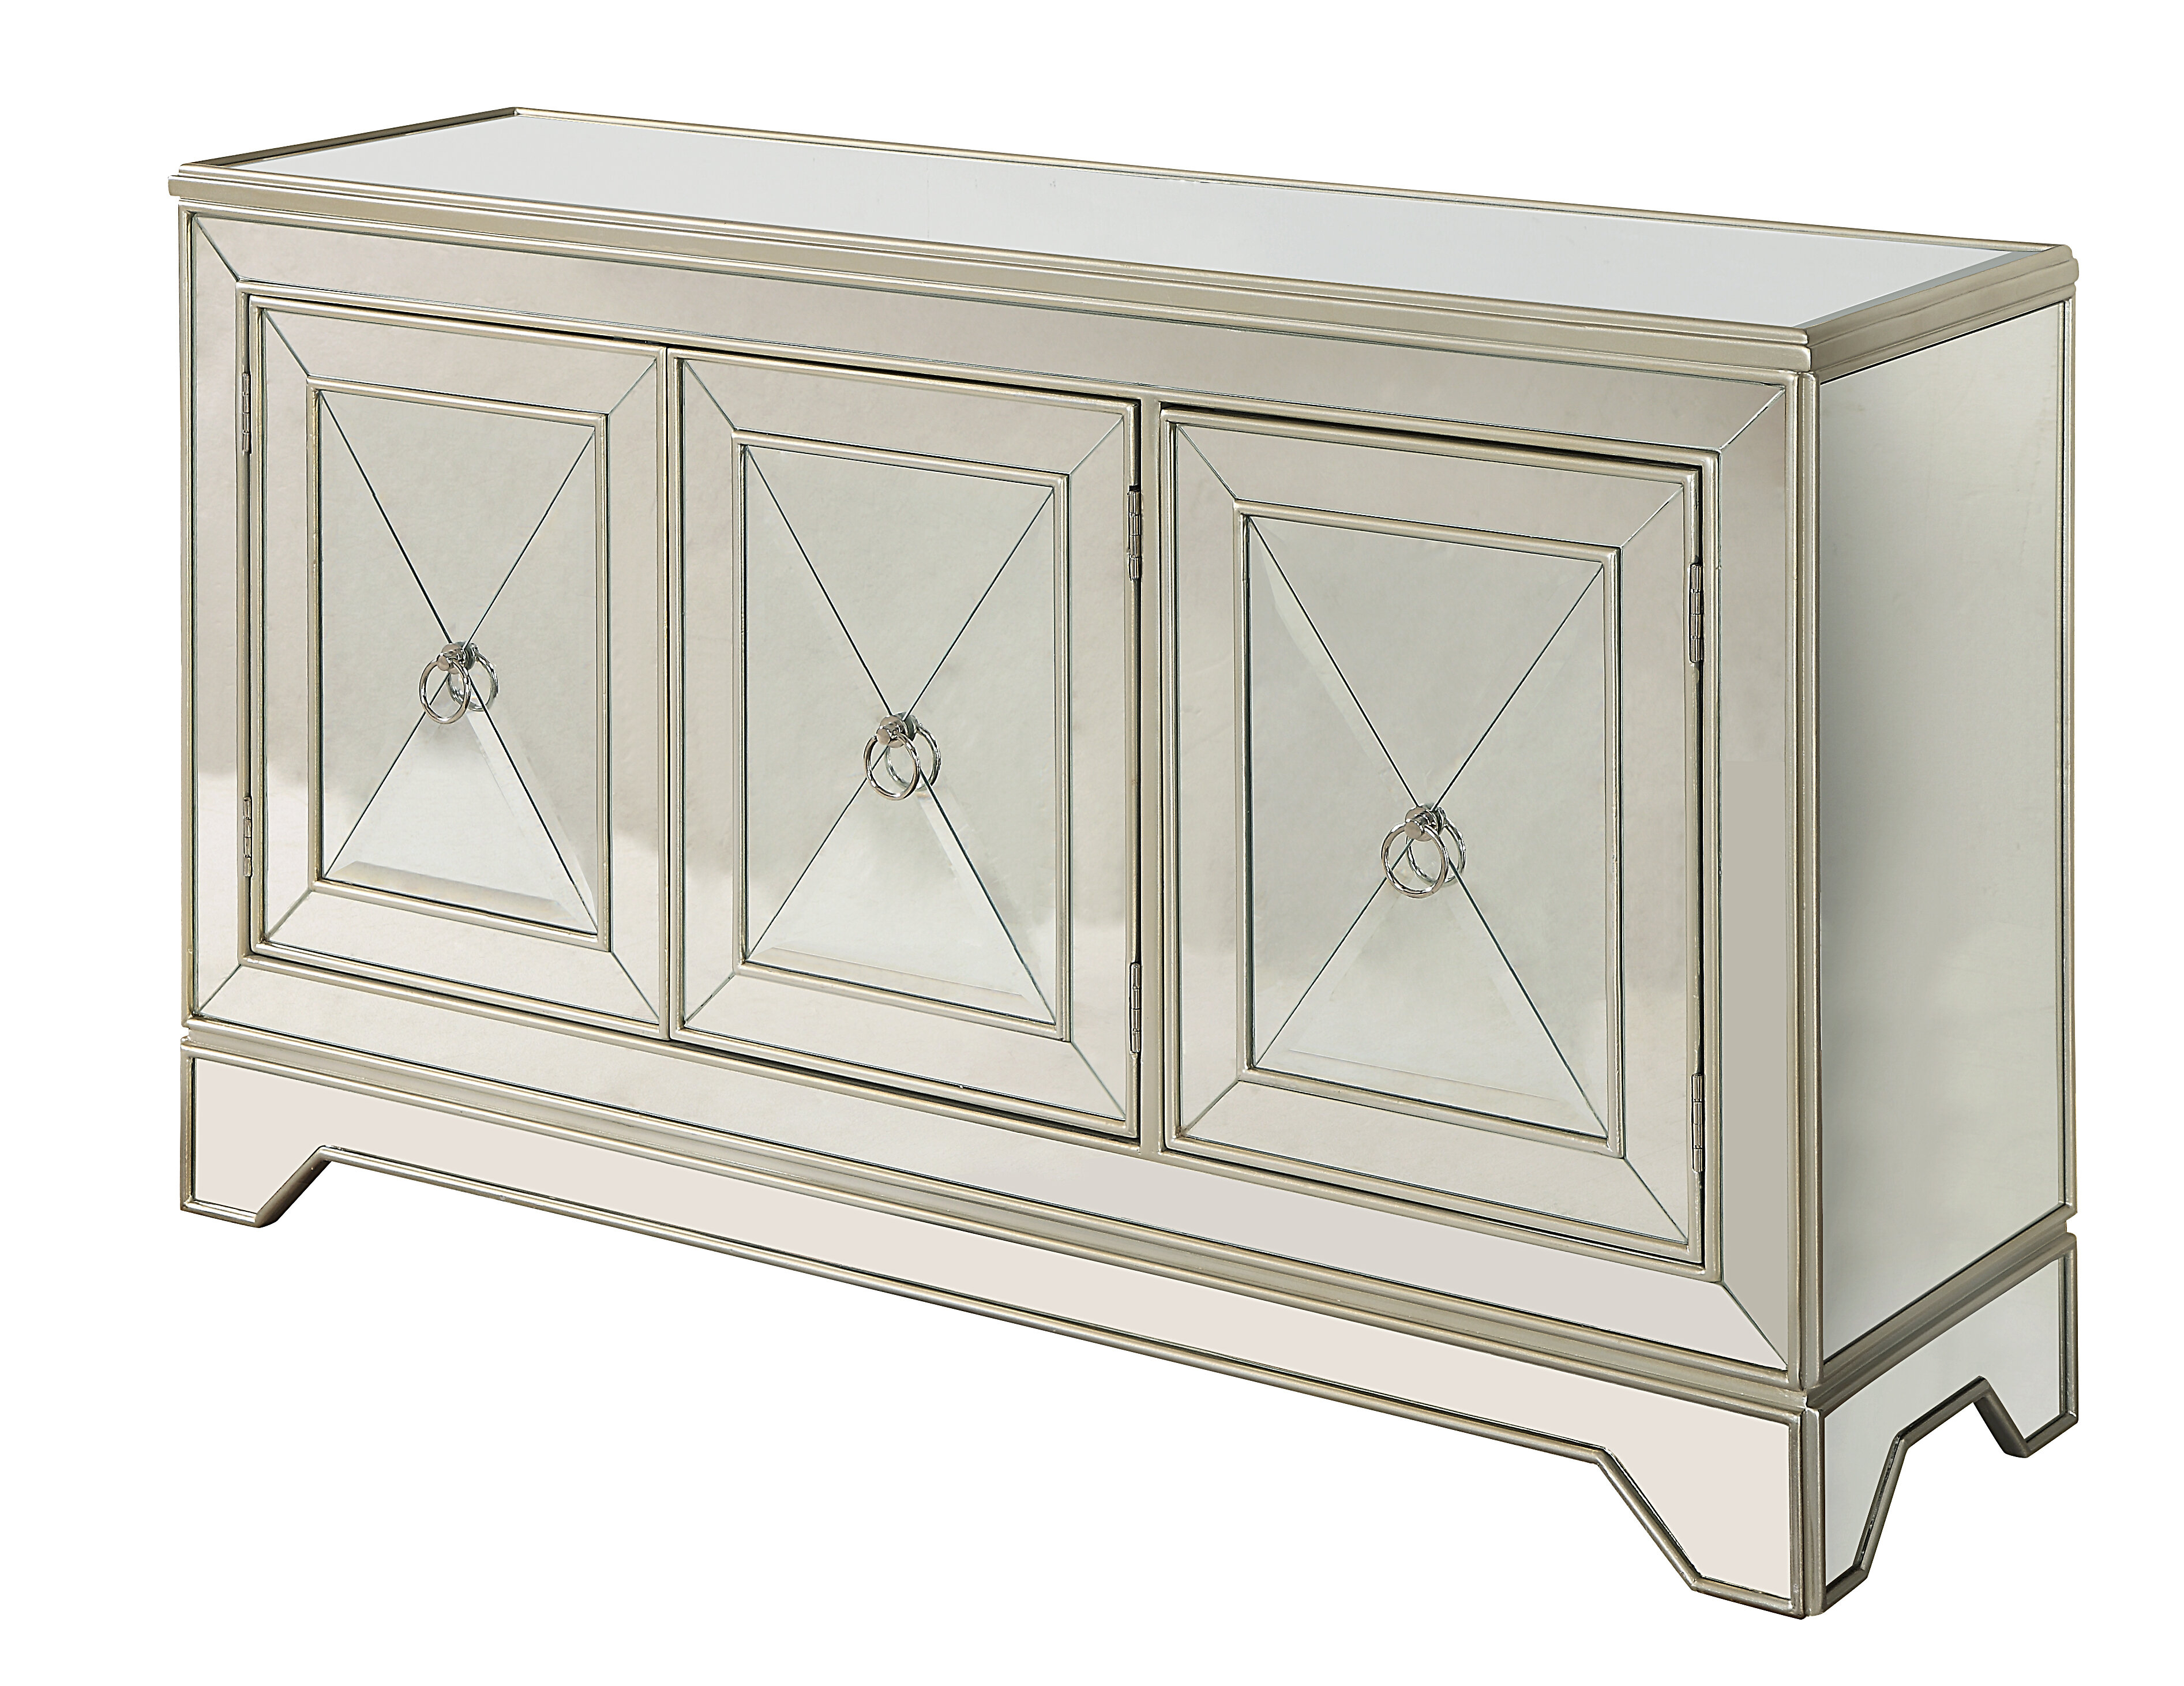 Sideboard / Credenza Mirrored Sideboards | Joss & Main For Lowrey Credenzas (View 21 of 30)